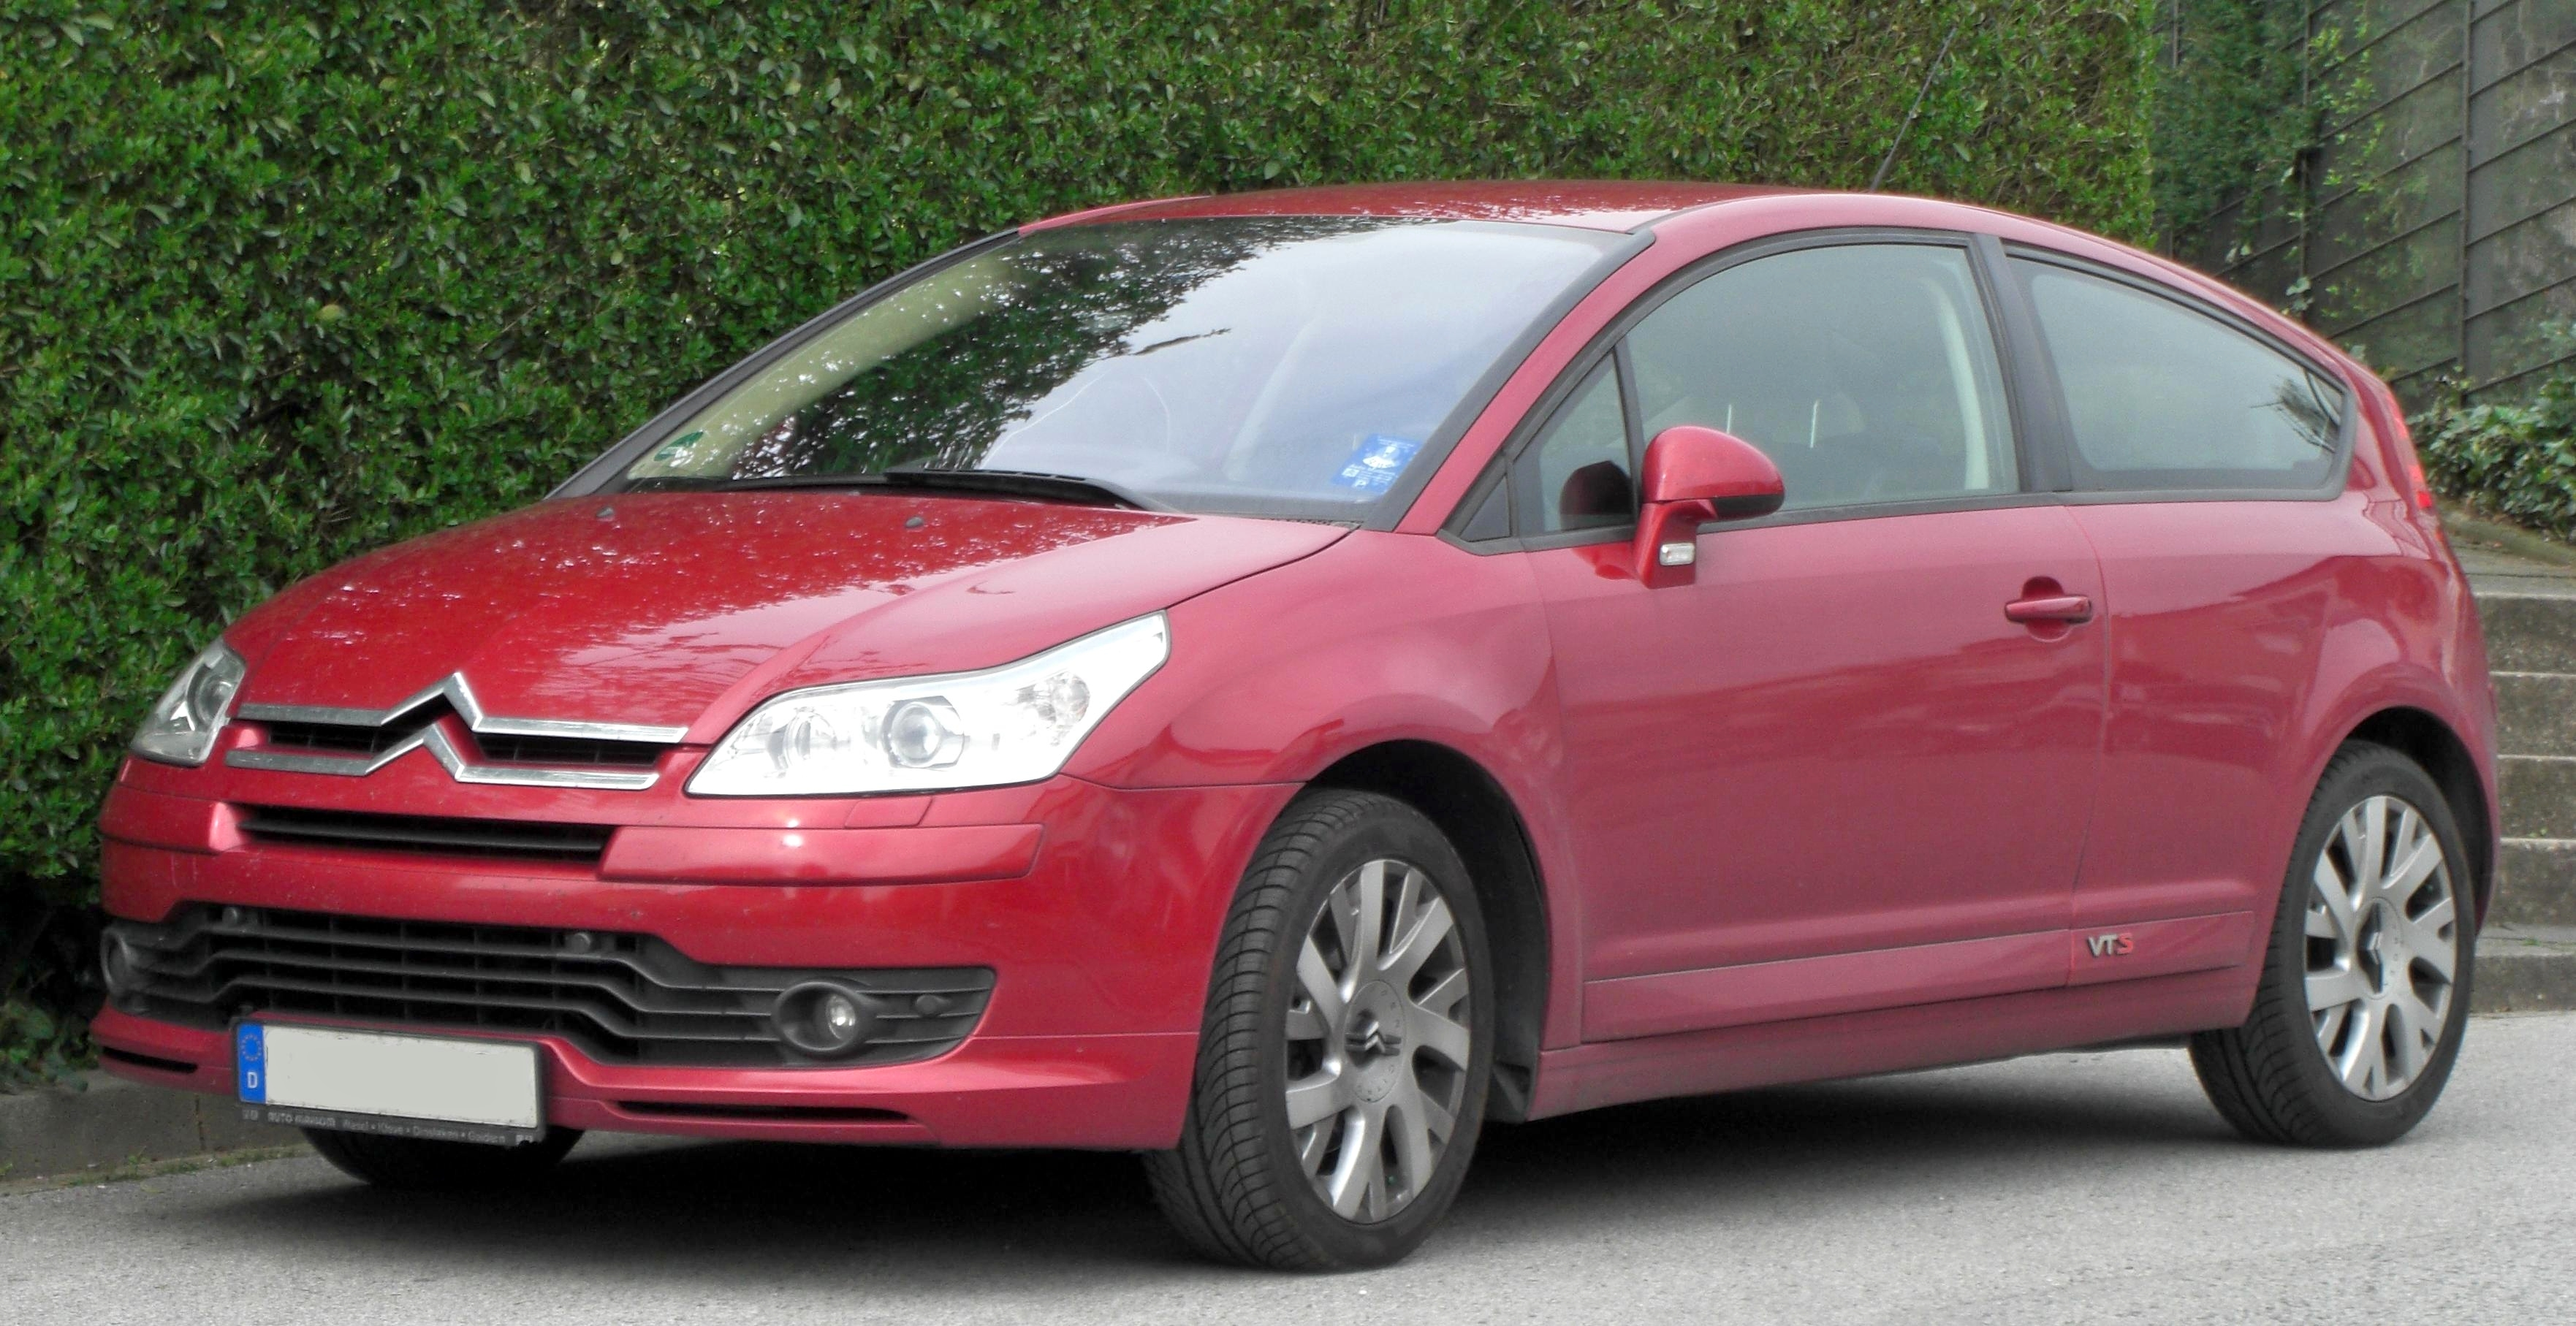 citroen c4 coupe specs photos videos and more on. Black Bedroom Furniture Sets. Home Design Ideas